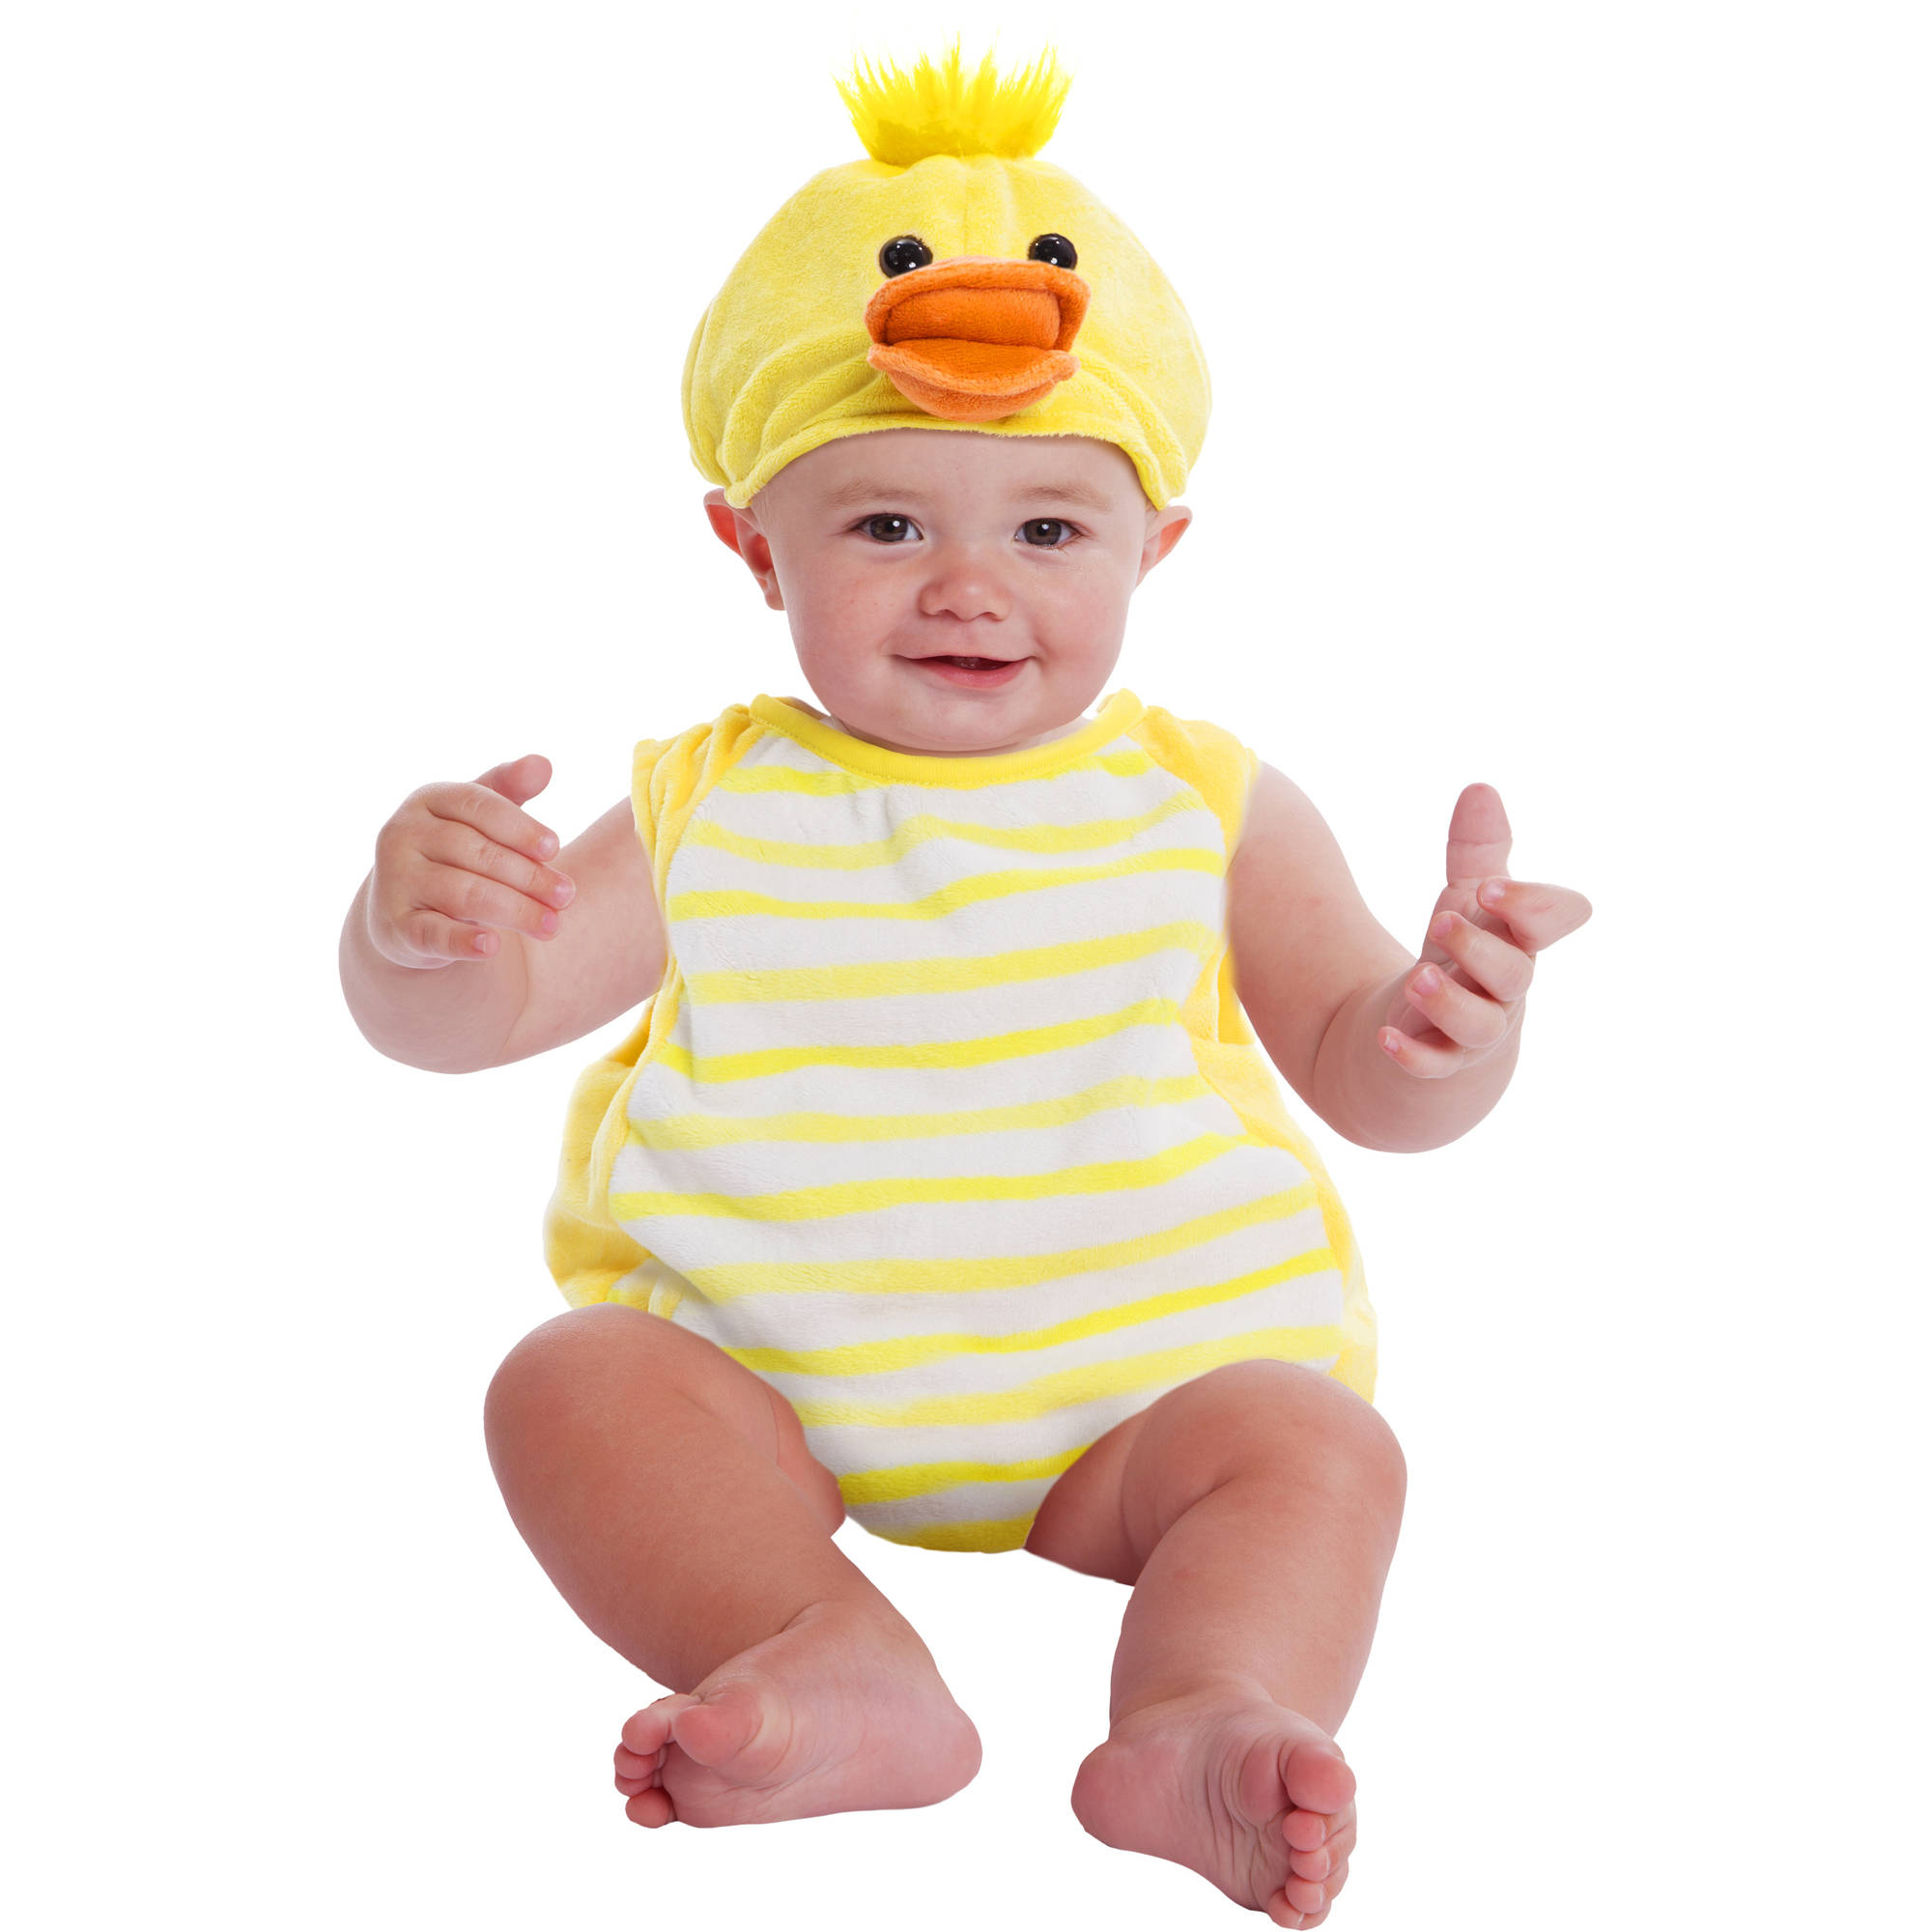 Duck Bubble Infant Halloween Dress Up / Role Play Costume  sc 1 st  Walmart & Duck Bubble Infant Halloween Dress Up / Role Play Costume - Walmart.com